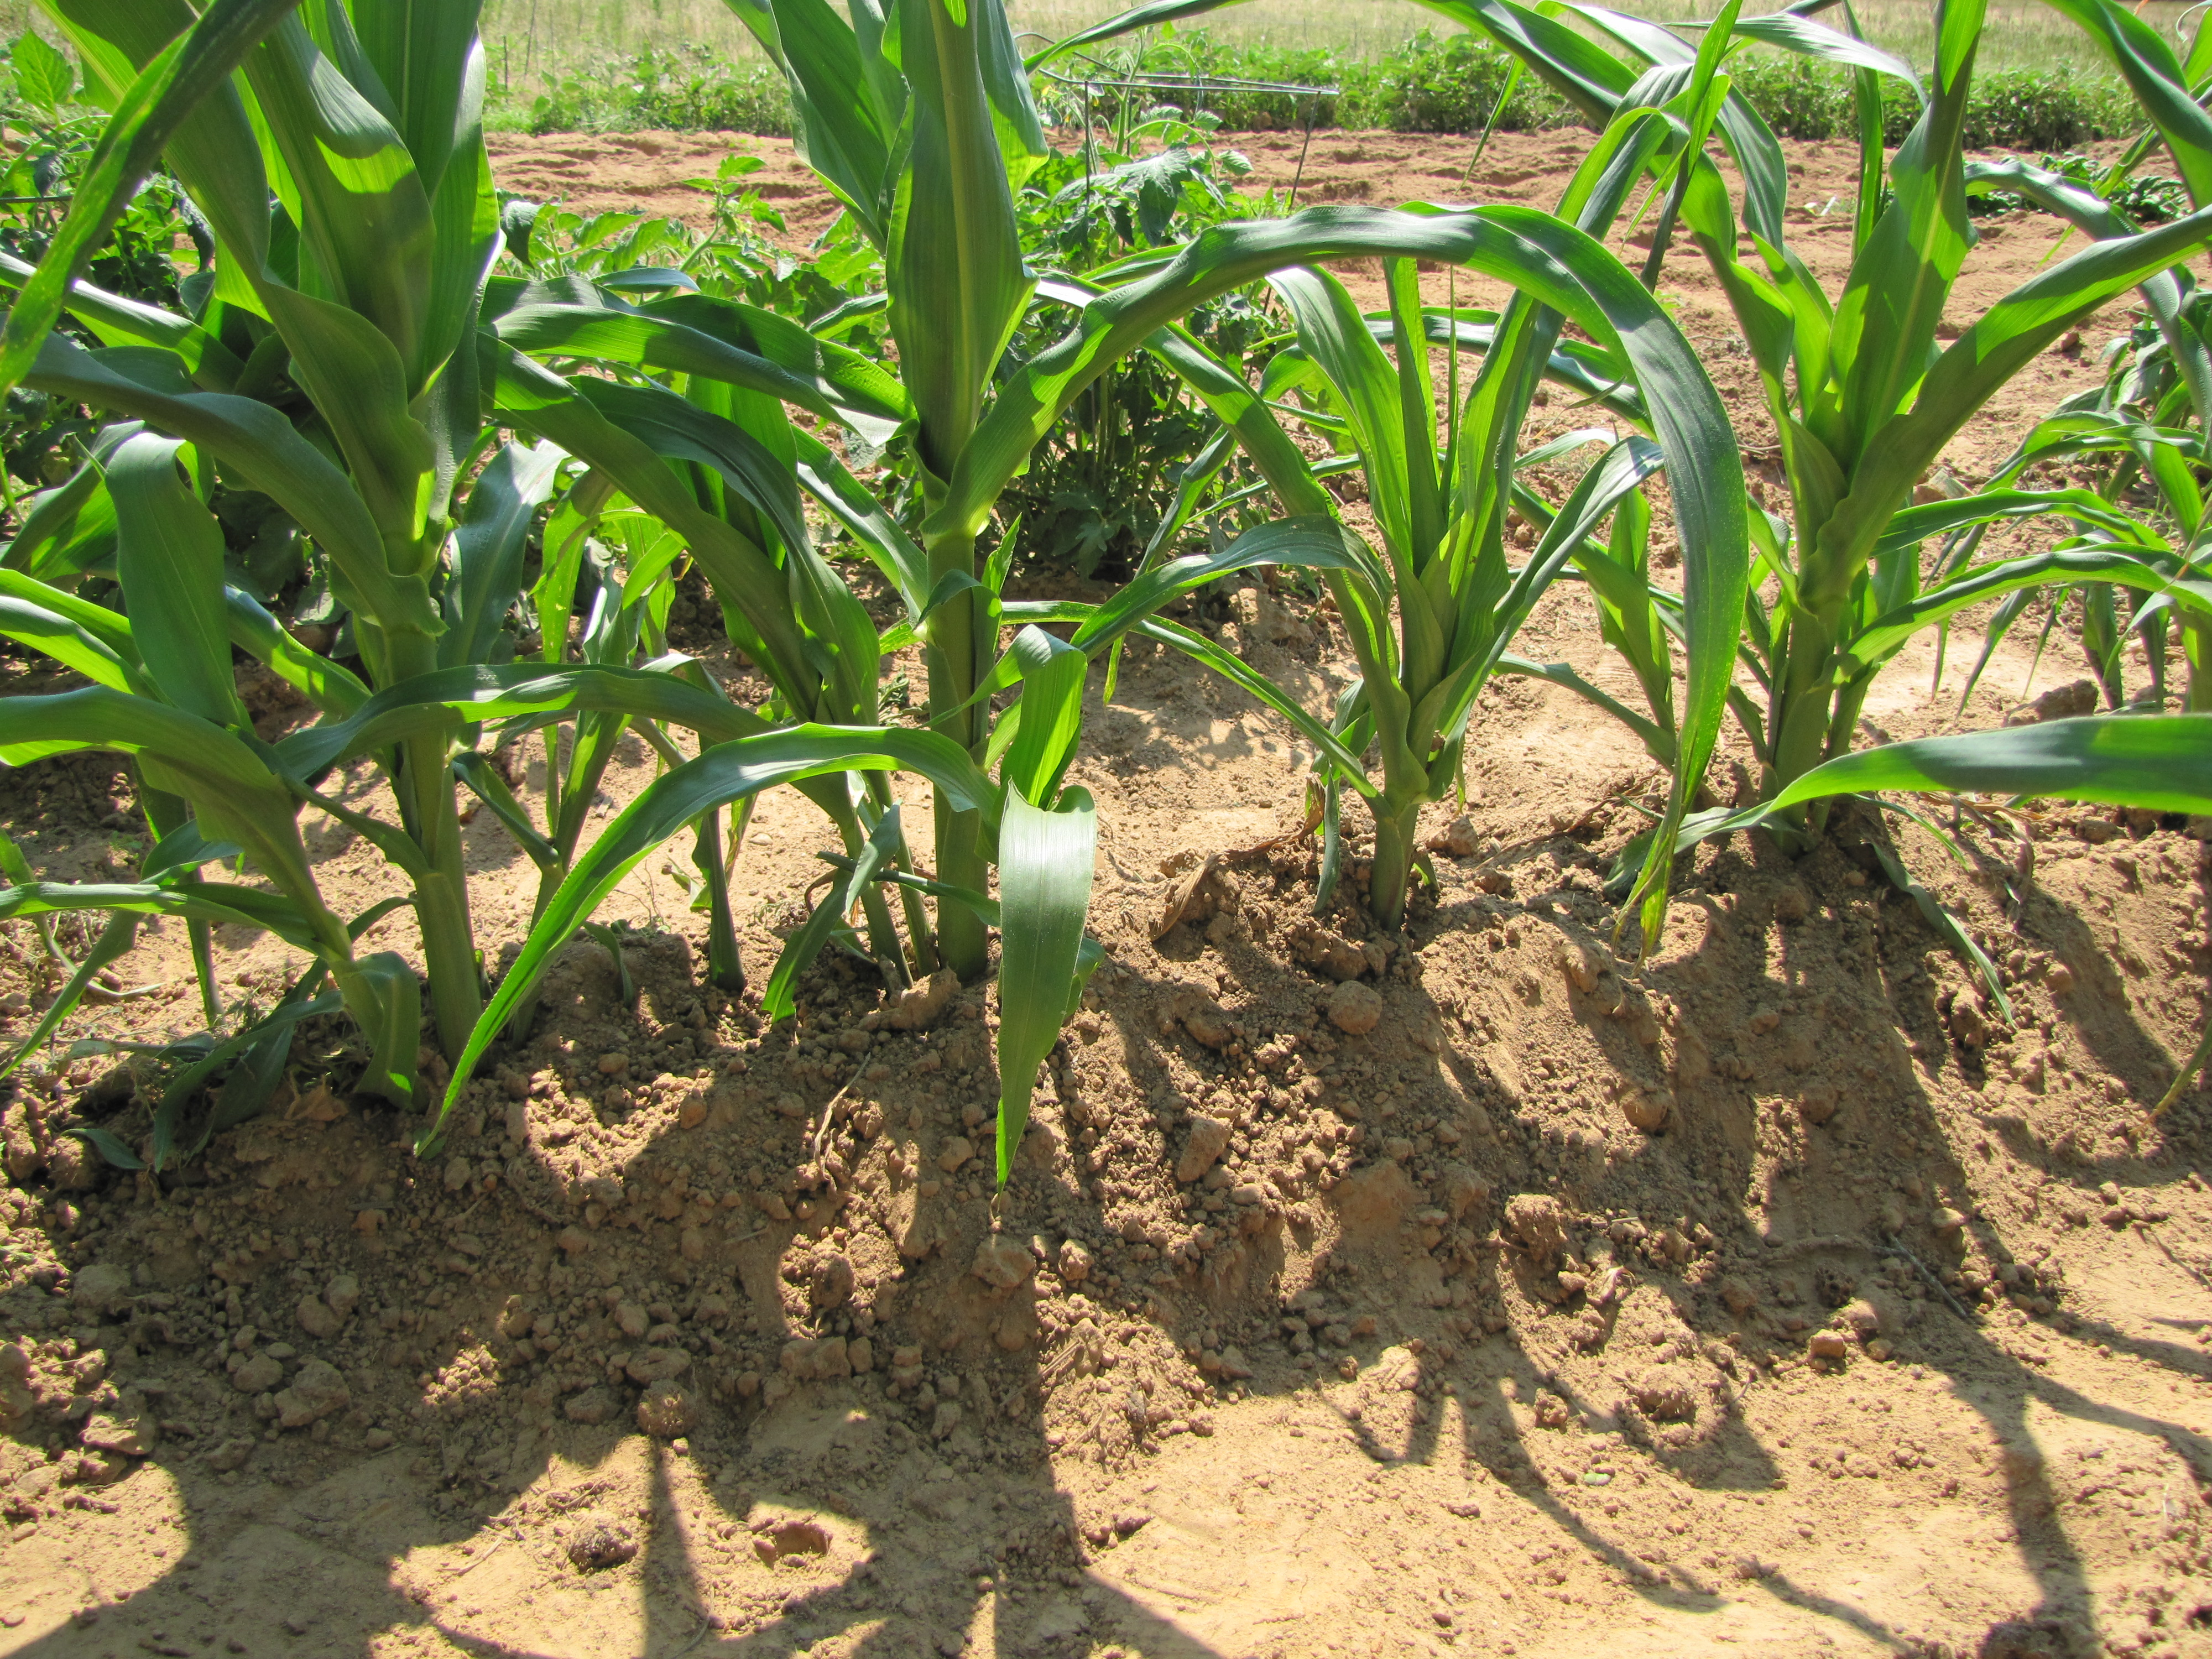 soil pulled up around corn plants